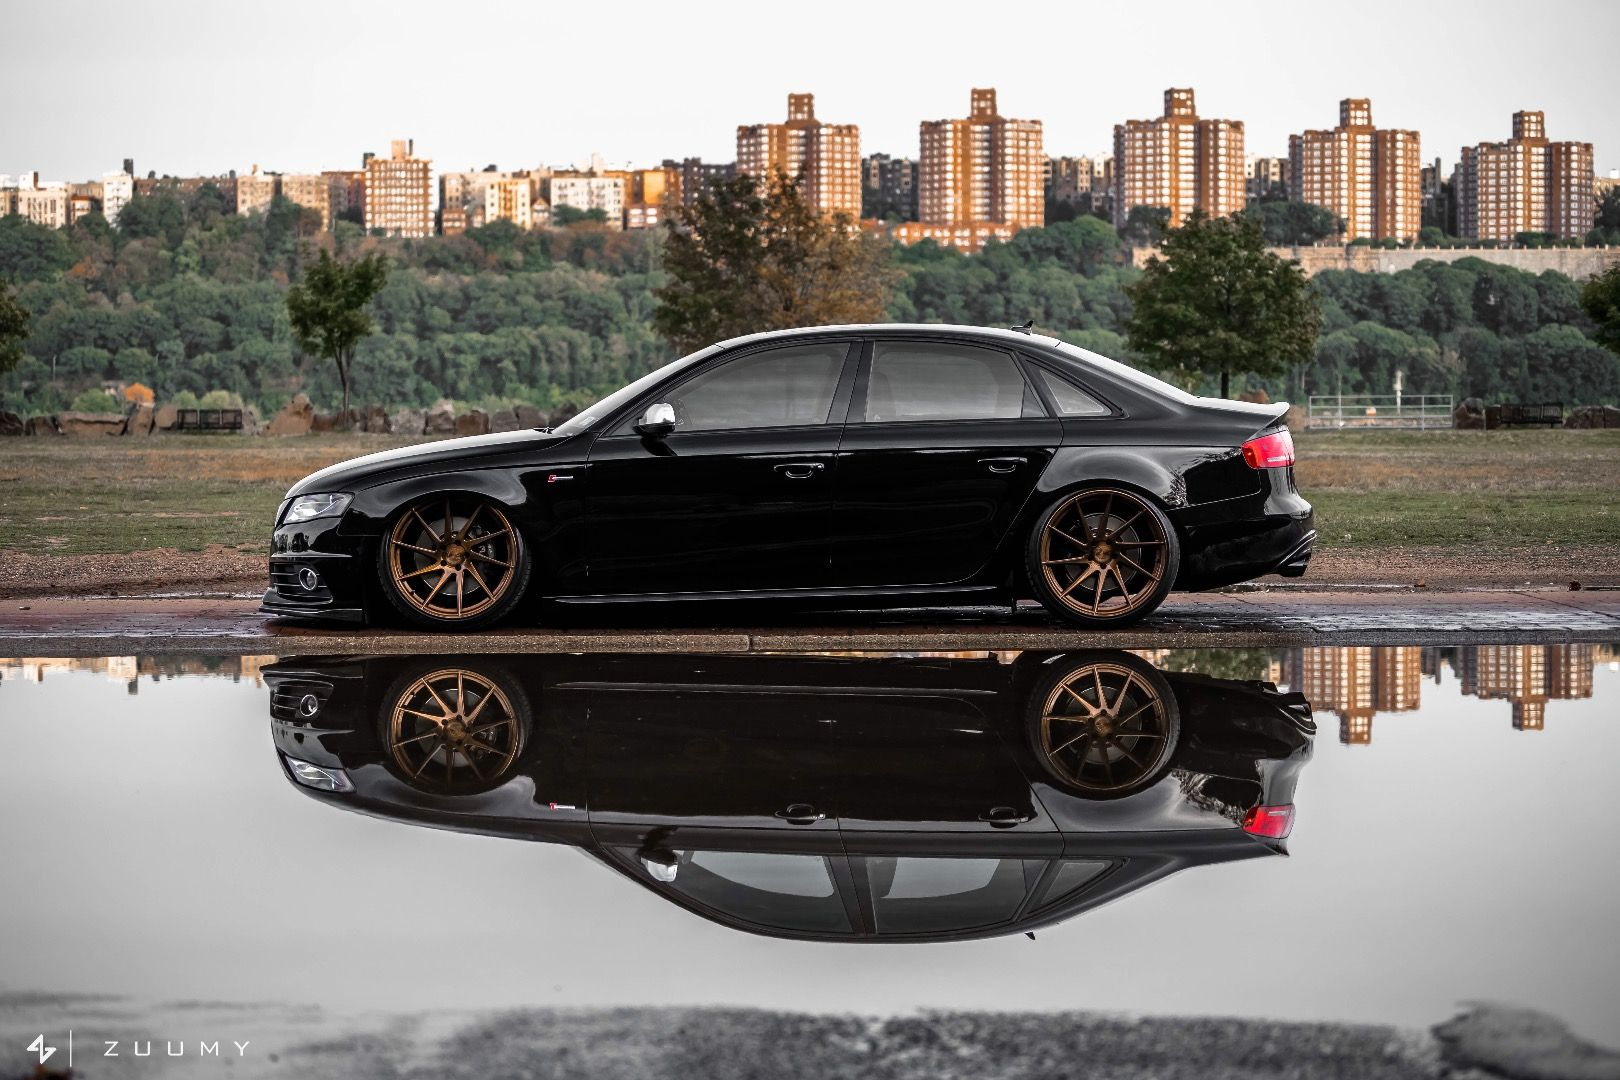 B8 S4 Modified Wheels Suspension Gallery Thread Page 86 B8 S4 Audi Cars Audi Rs